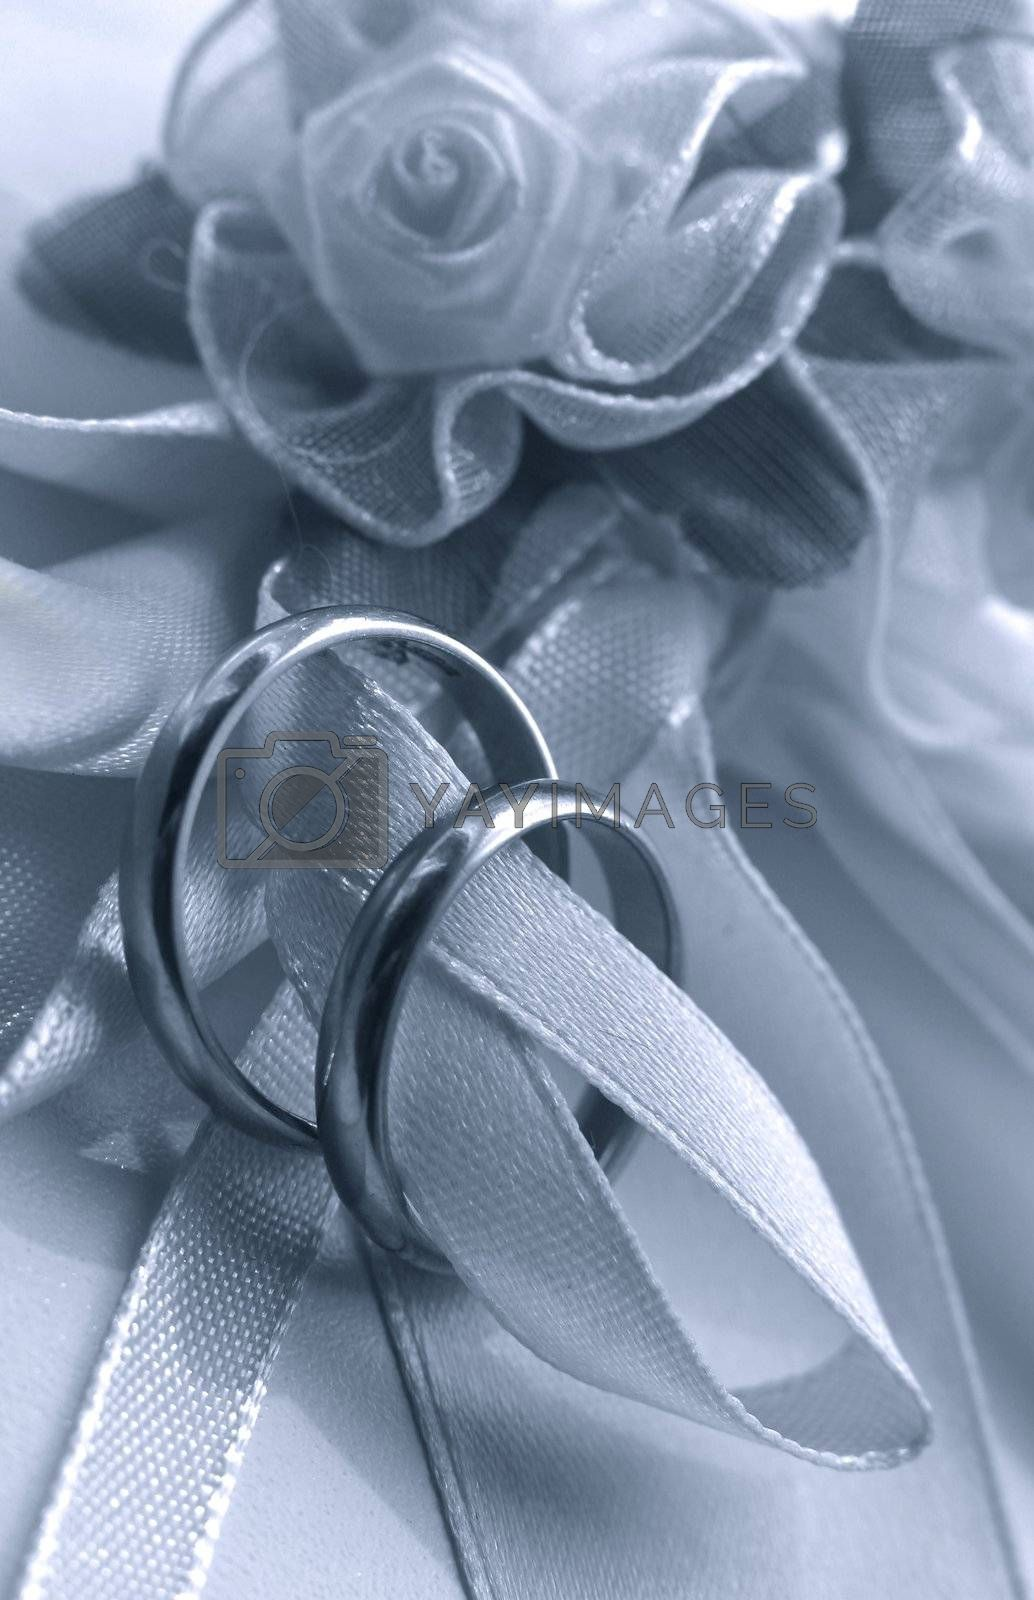 Wedding rings by friday